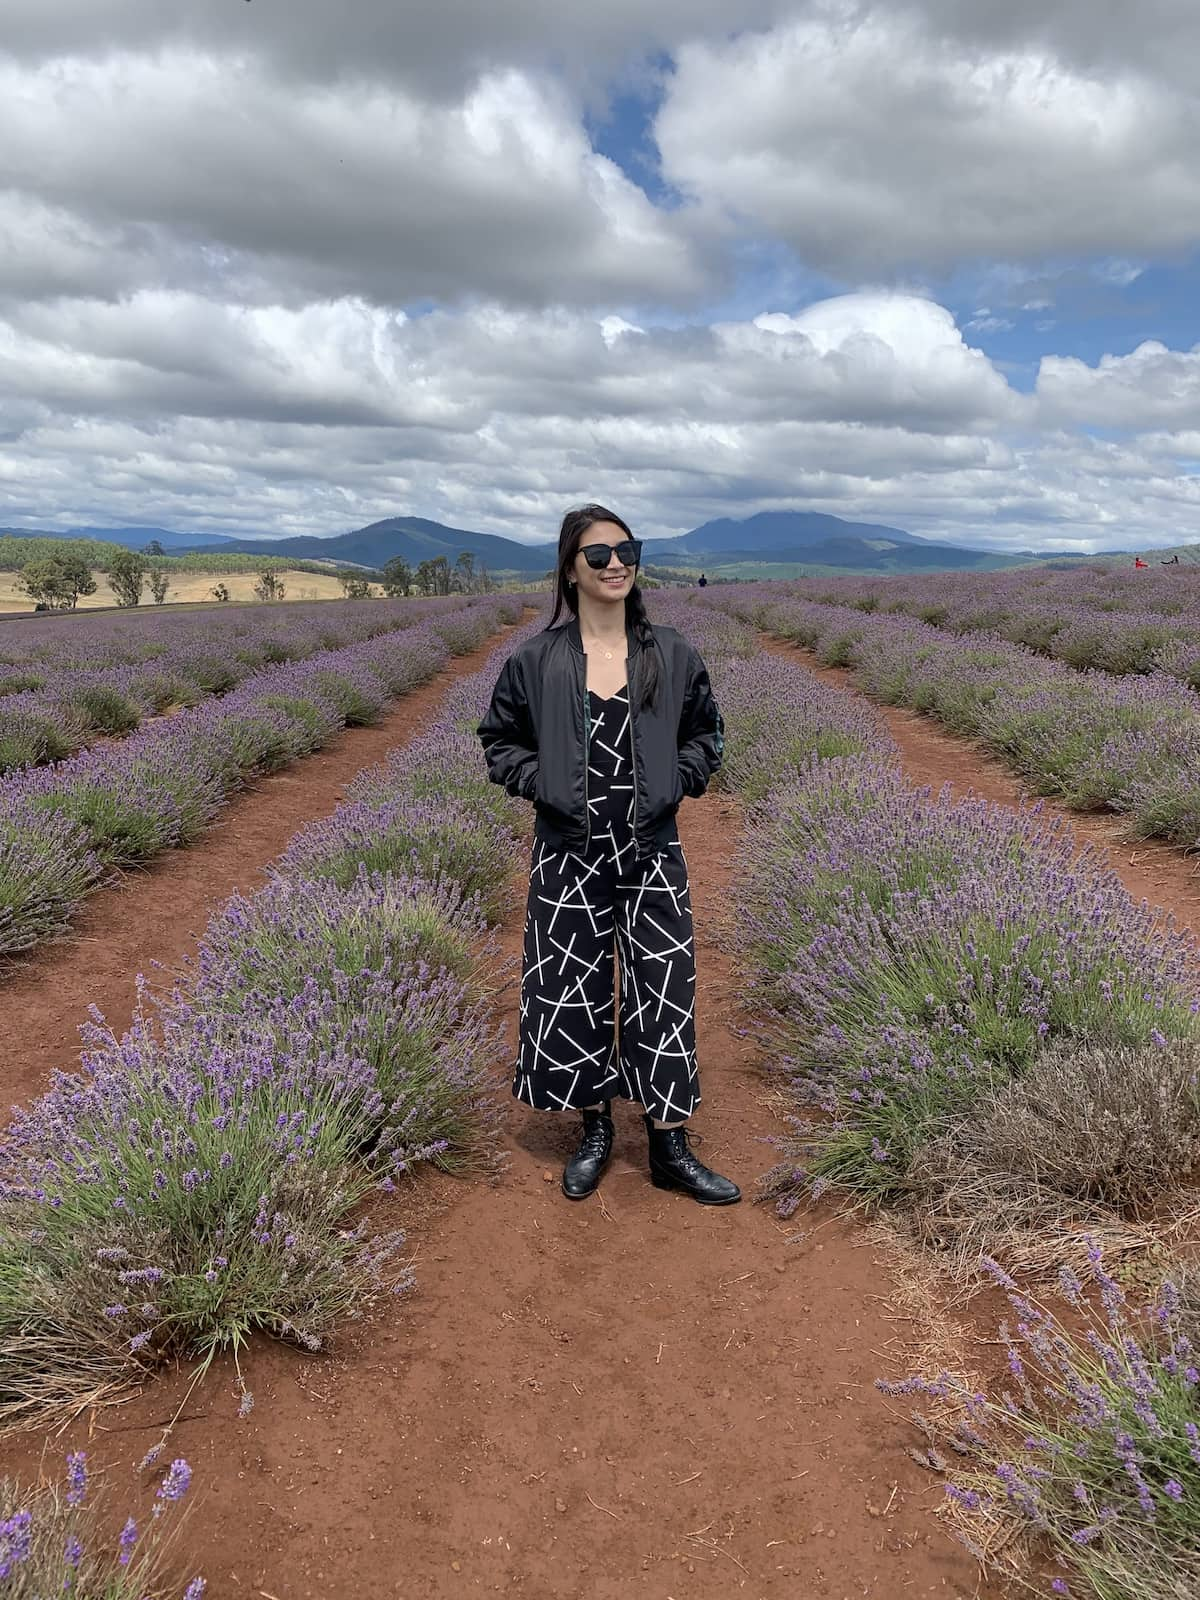 A woman in a black patterned jumpsuit and black bomber jacket, standing between rows of planted lavender. She is wearing black sunglasses.